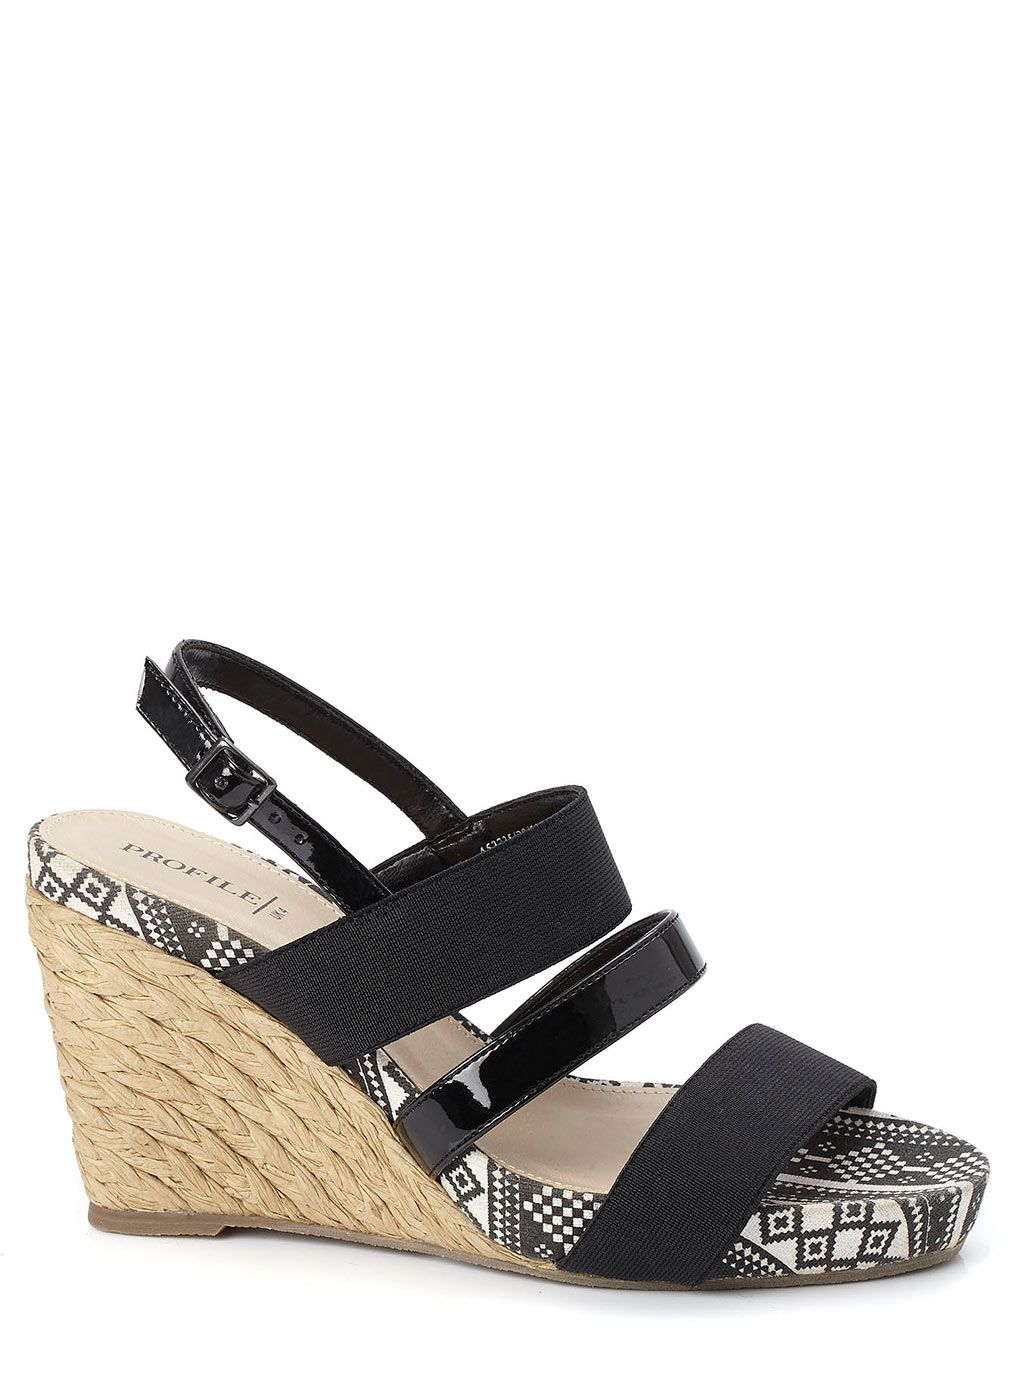 Bhs womens shoes and sandals